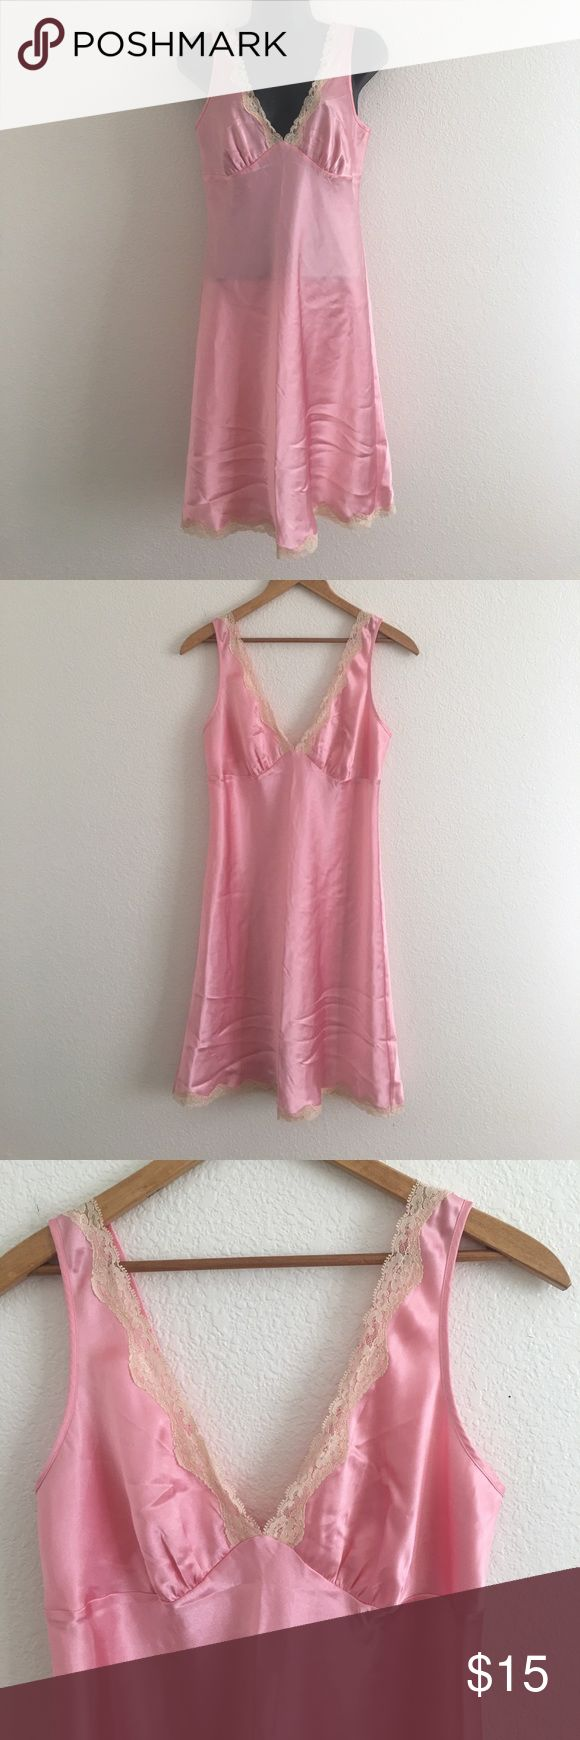 Victoria Secret Pink Satin Nightgown / Slip Victoria Secret Preowned Pink Satin Polyester Nightgown, slip or Lingerie. Size Small. Cream Lace Trim on front. 37 inches long. Victoria's Secret Intimates & Sleepwear Chemises & Slips